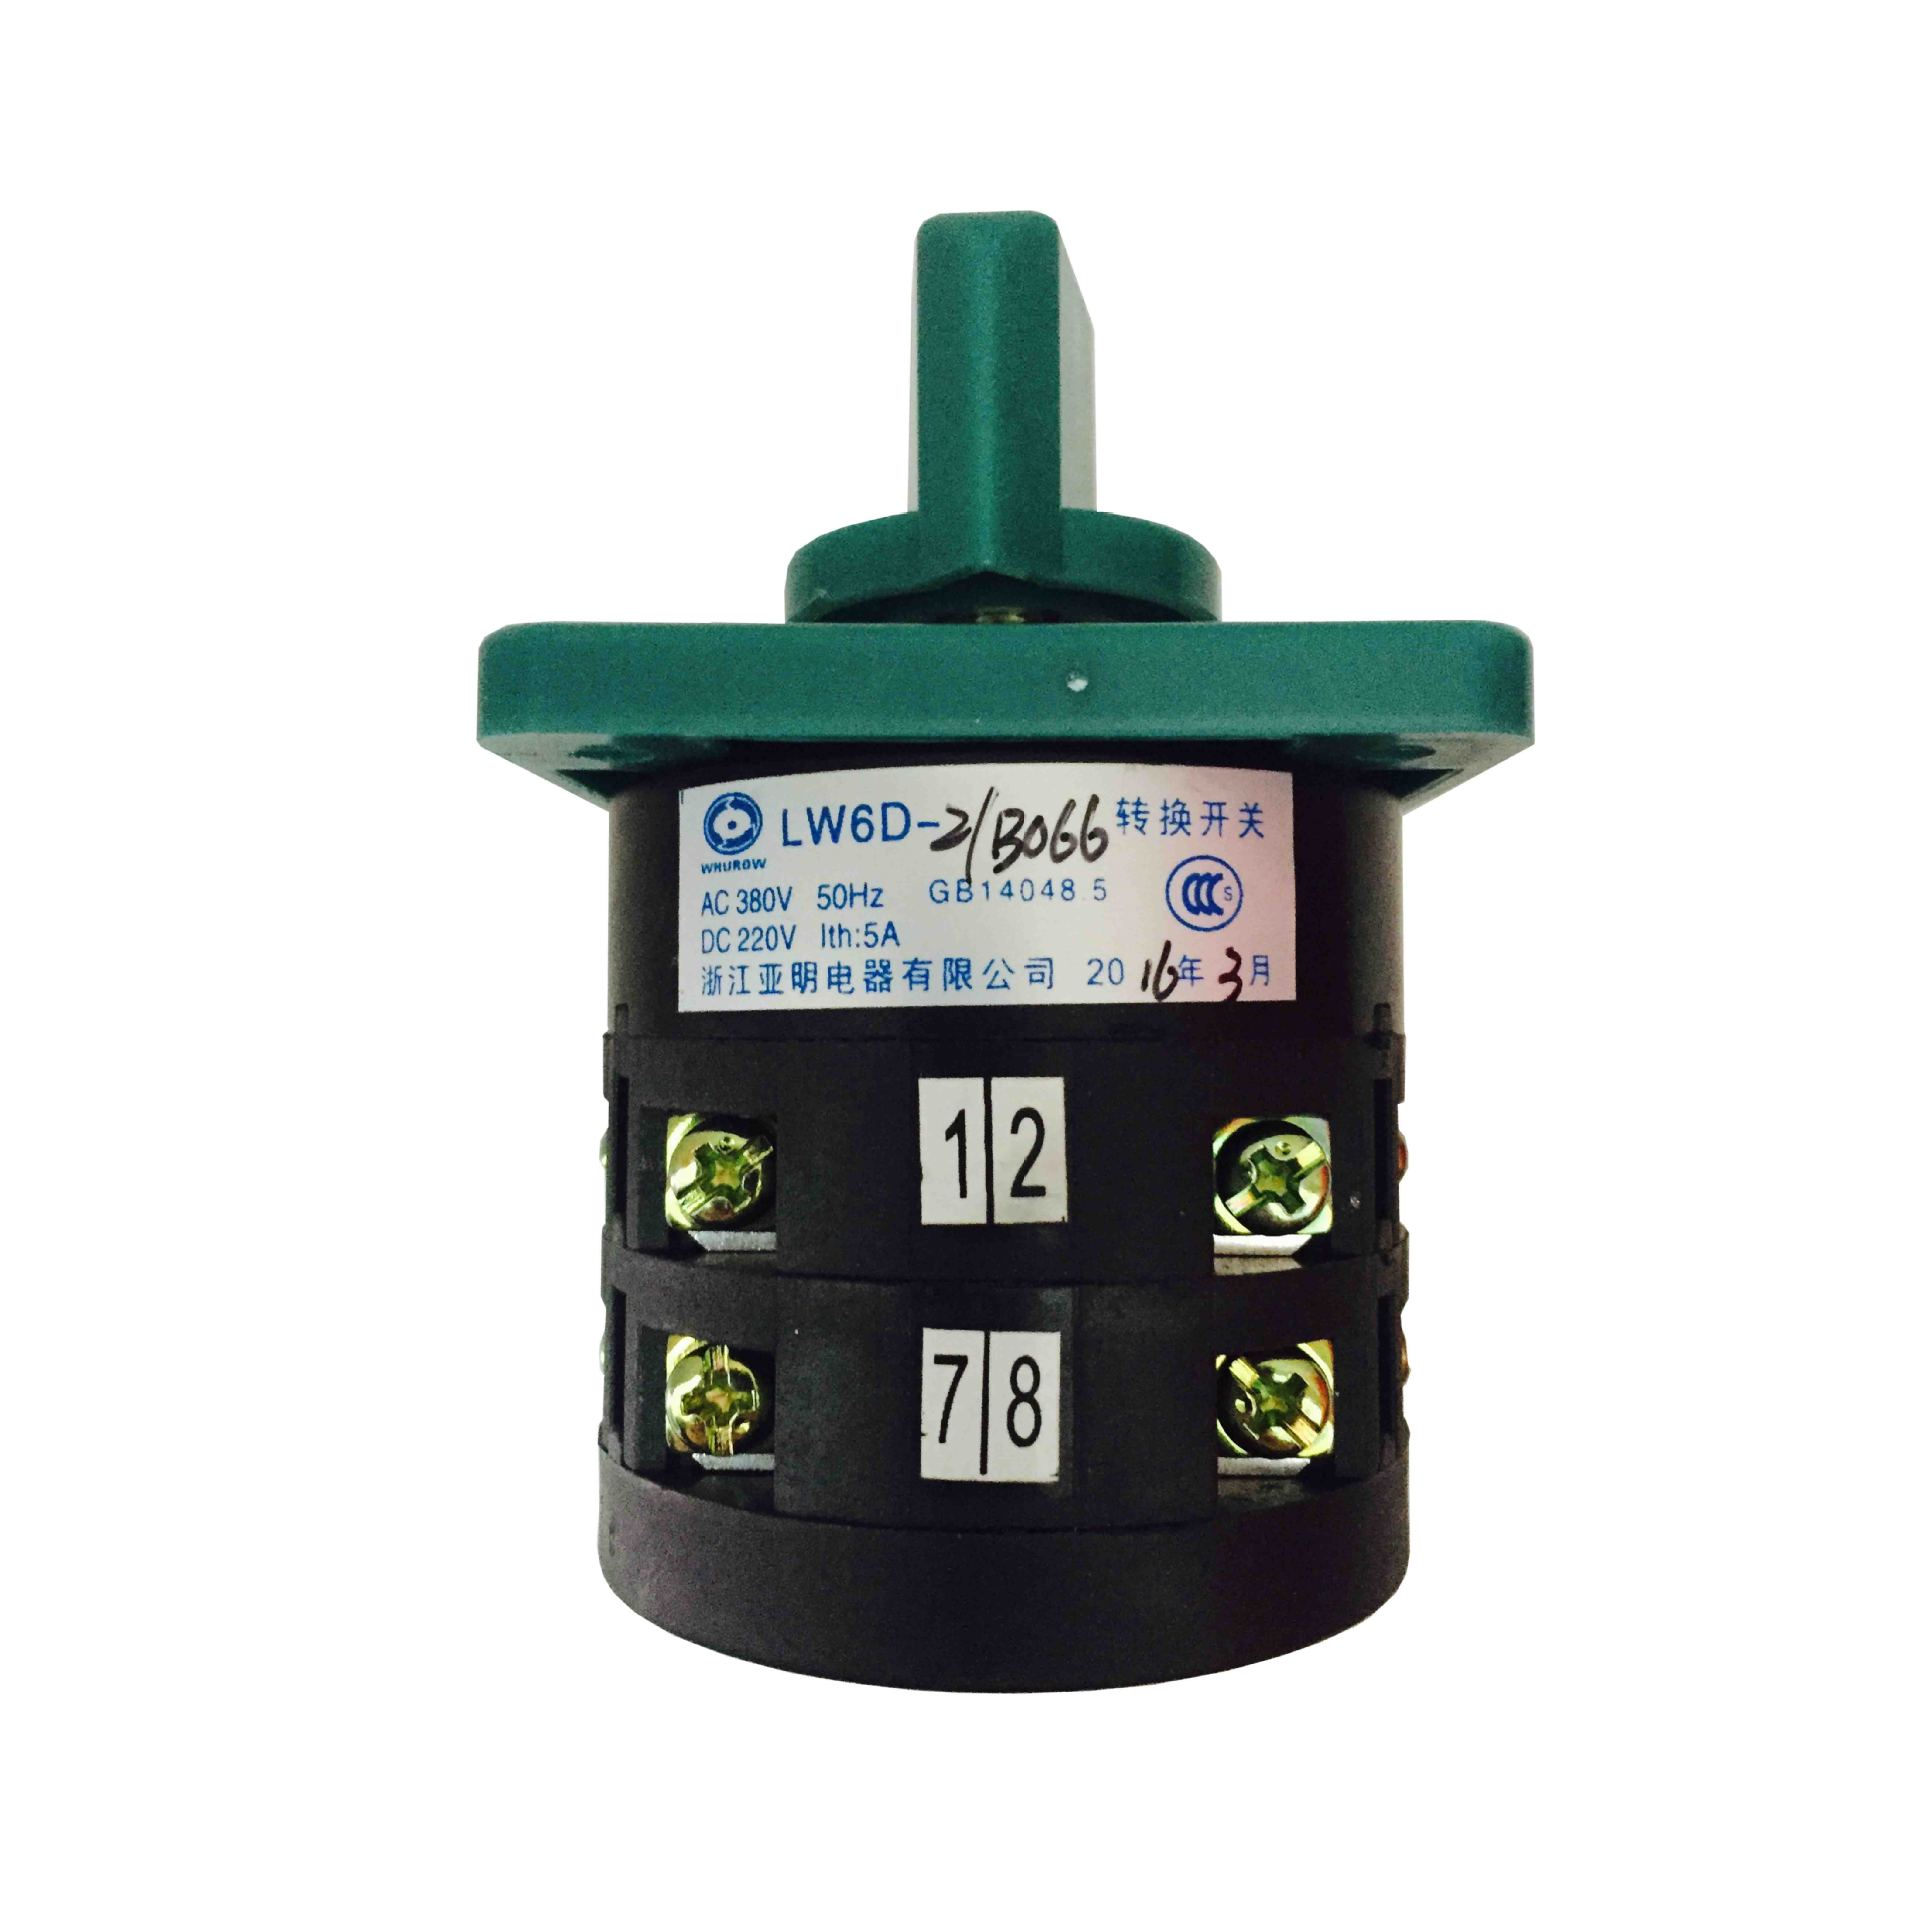 Zhejiang Yaming Lighting electrical appliance LW6-2/B066 interruptor universal 3 velocidades 2 interruptor rotativo de Contato de prata